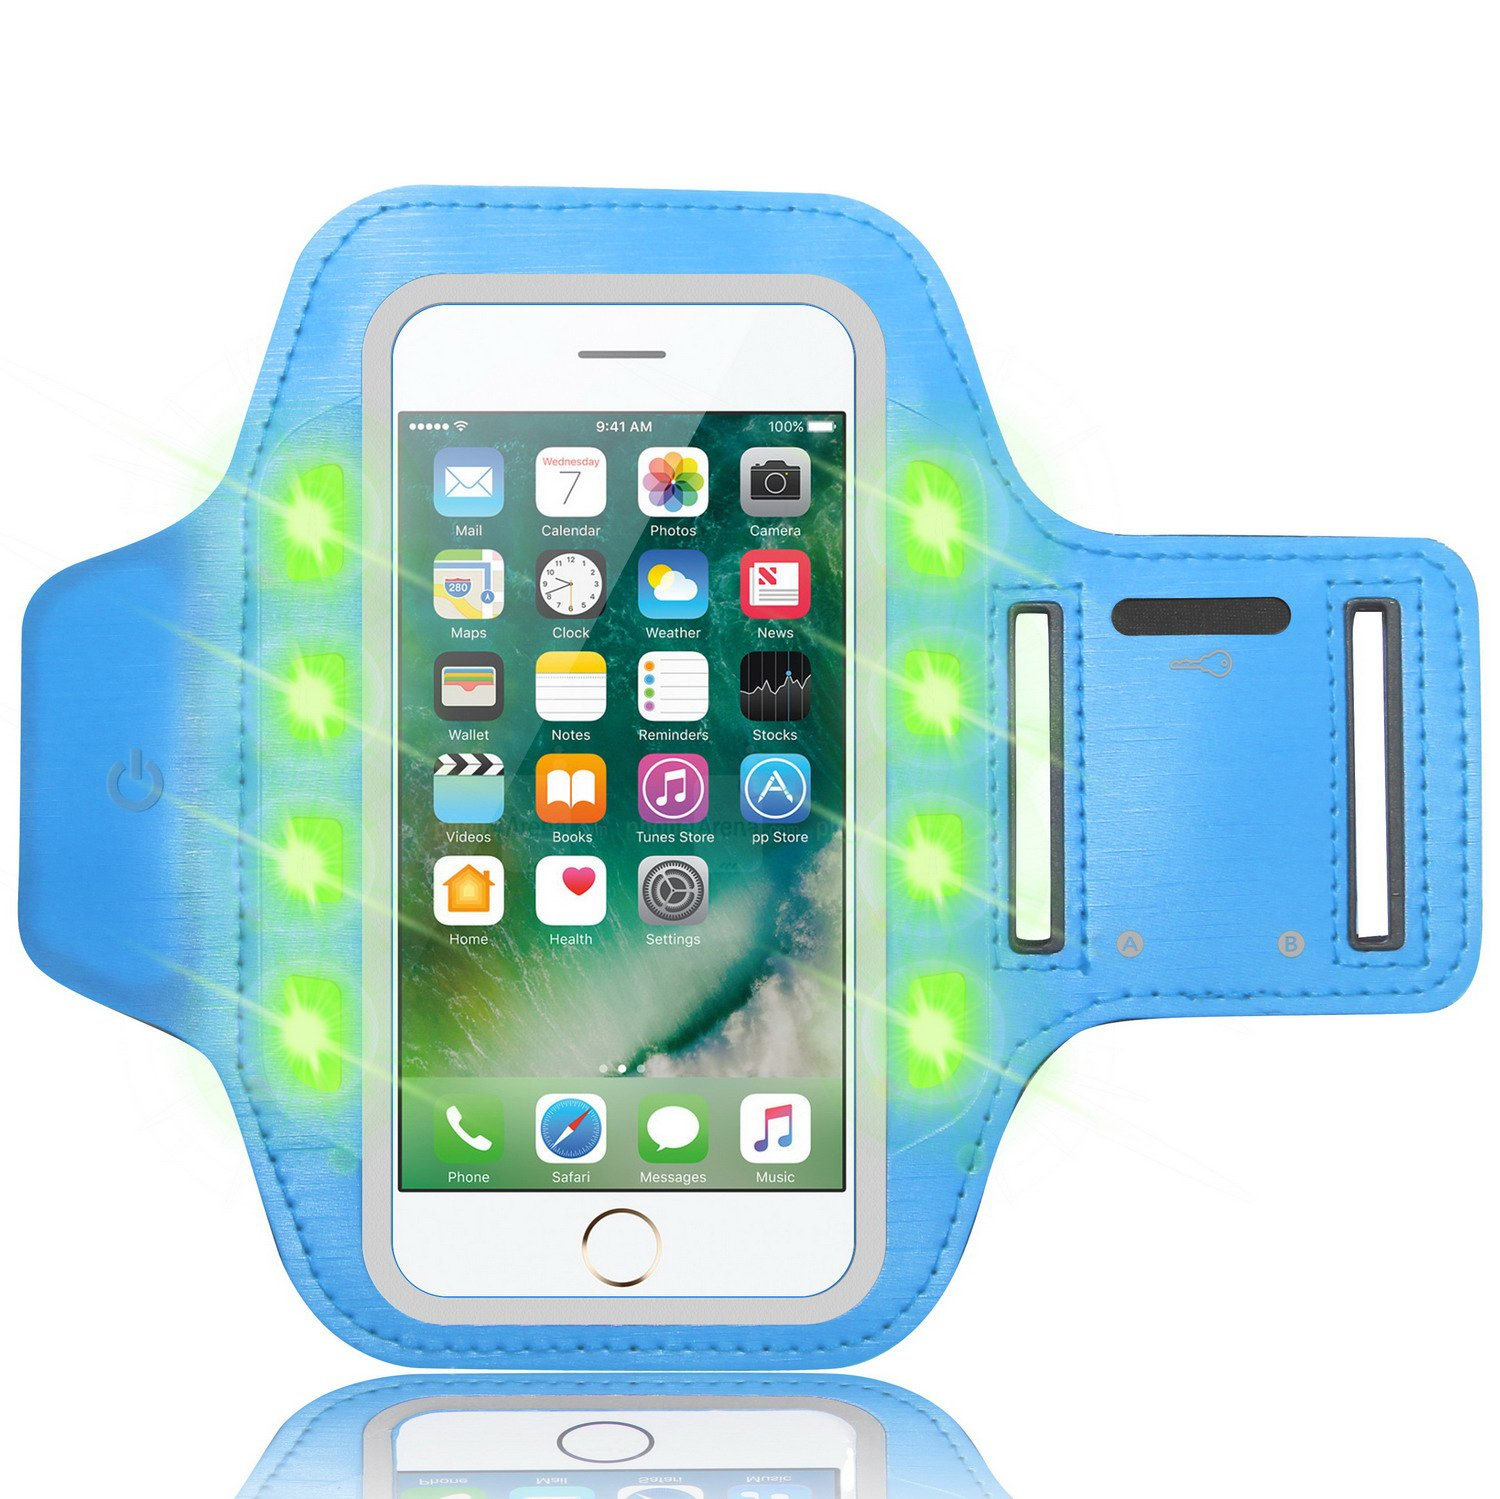 Sports Armband For Iphone X 8 7 6 Plus 5 5sgalaxy S9 Circuit Board Samsung Note 2 N7100 Best Durable Case Cell Phones S8 S7 S6 Edge Water Resistant Led Flash Lamp Accessories